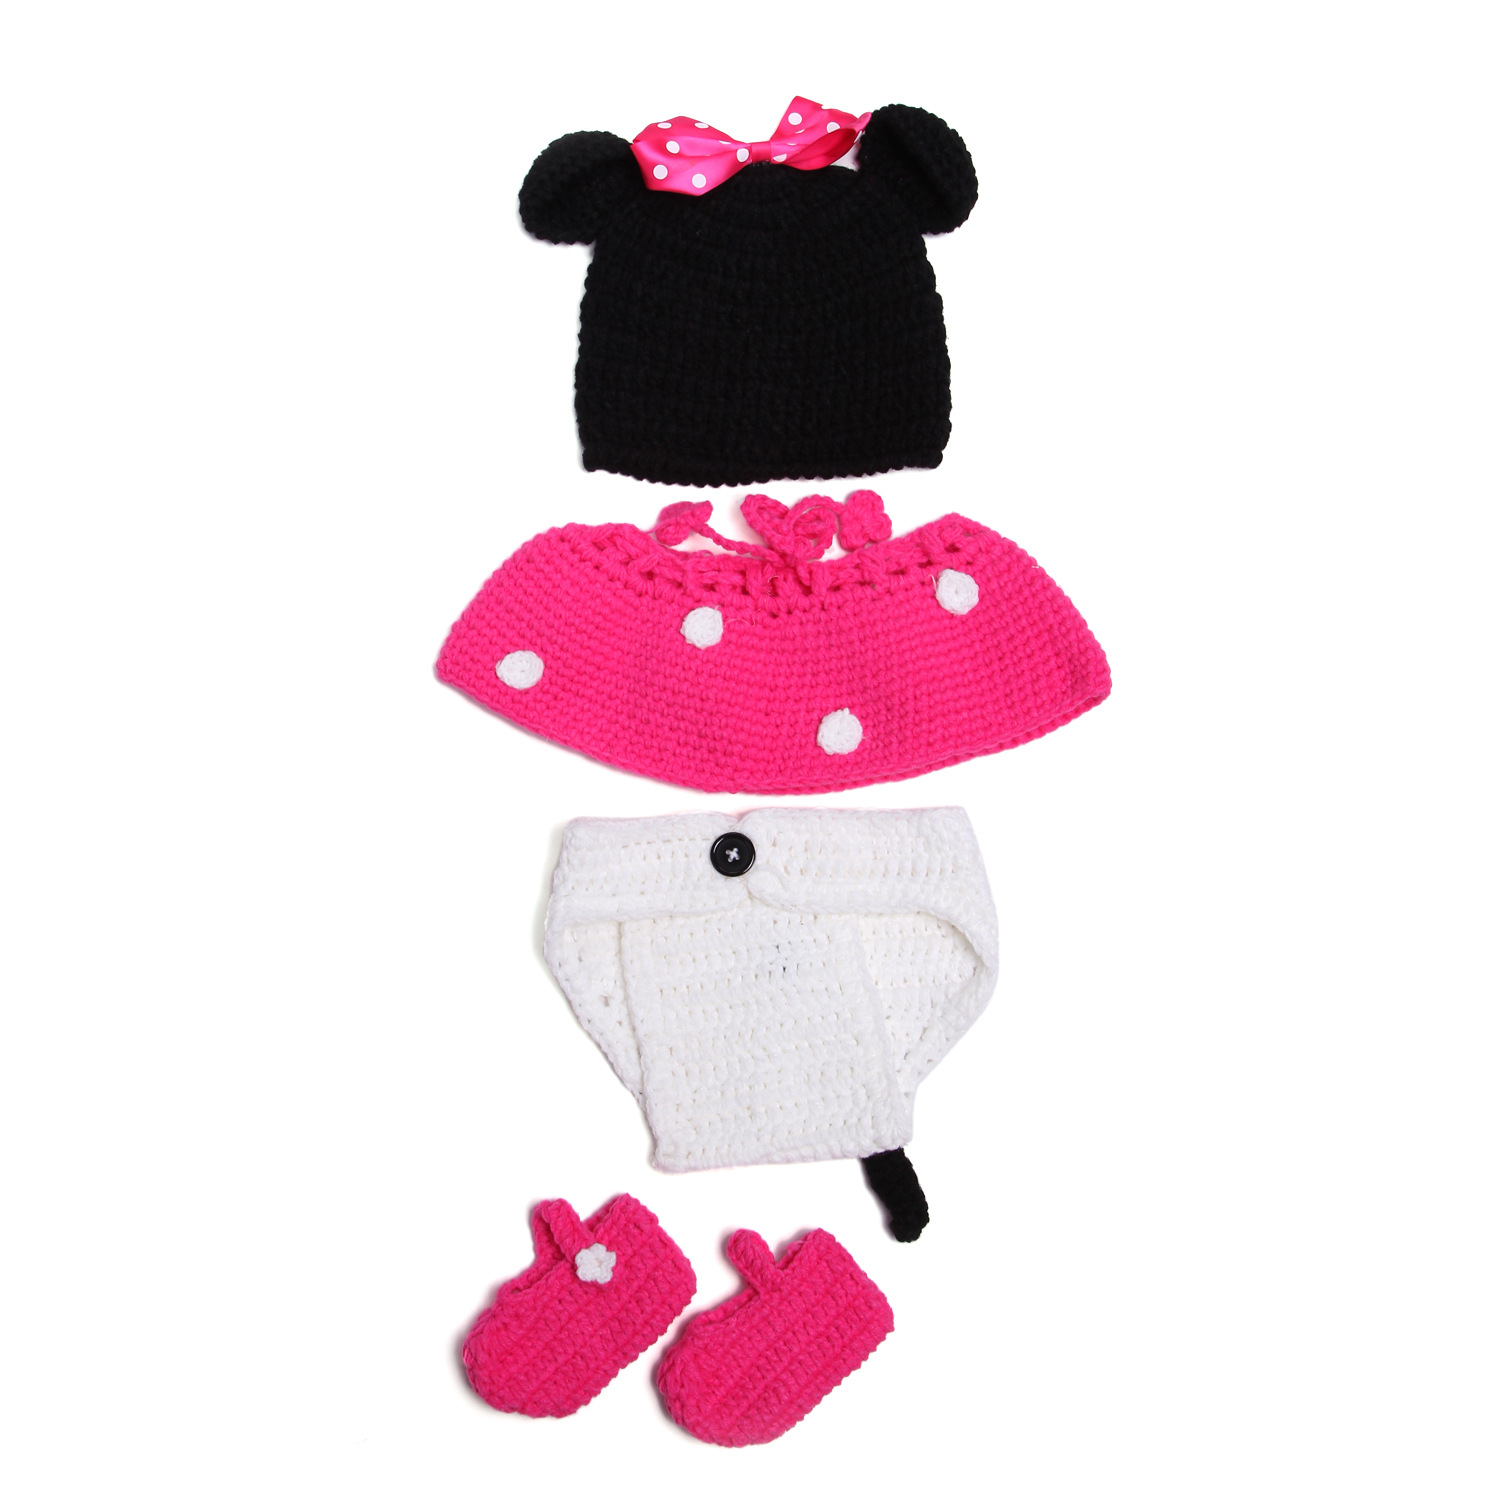 New Arrival 4pcs/set Baby Photography Accessories Handmade Crochet Costume Baby Newborn Outfits(China (Mainland))